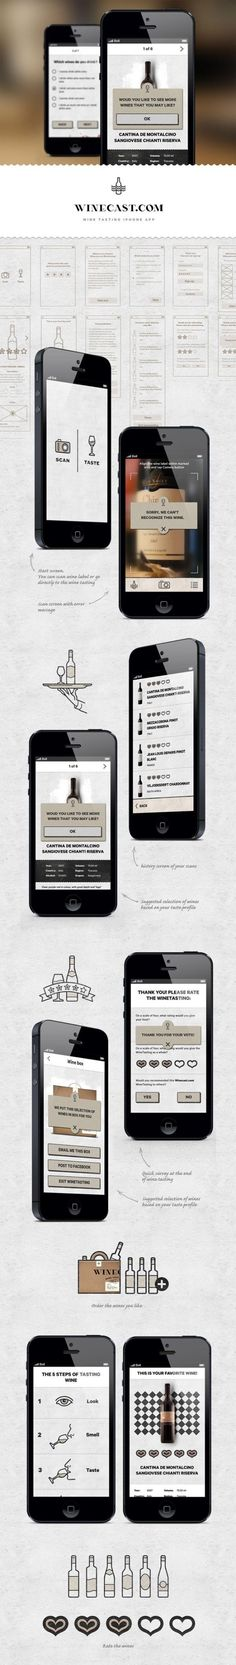 #app #appdesign #design #webapp #UI #UX #awesome #simple